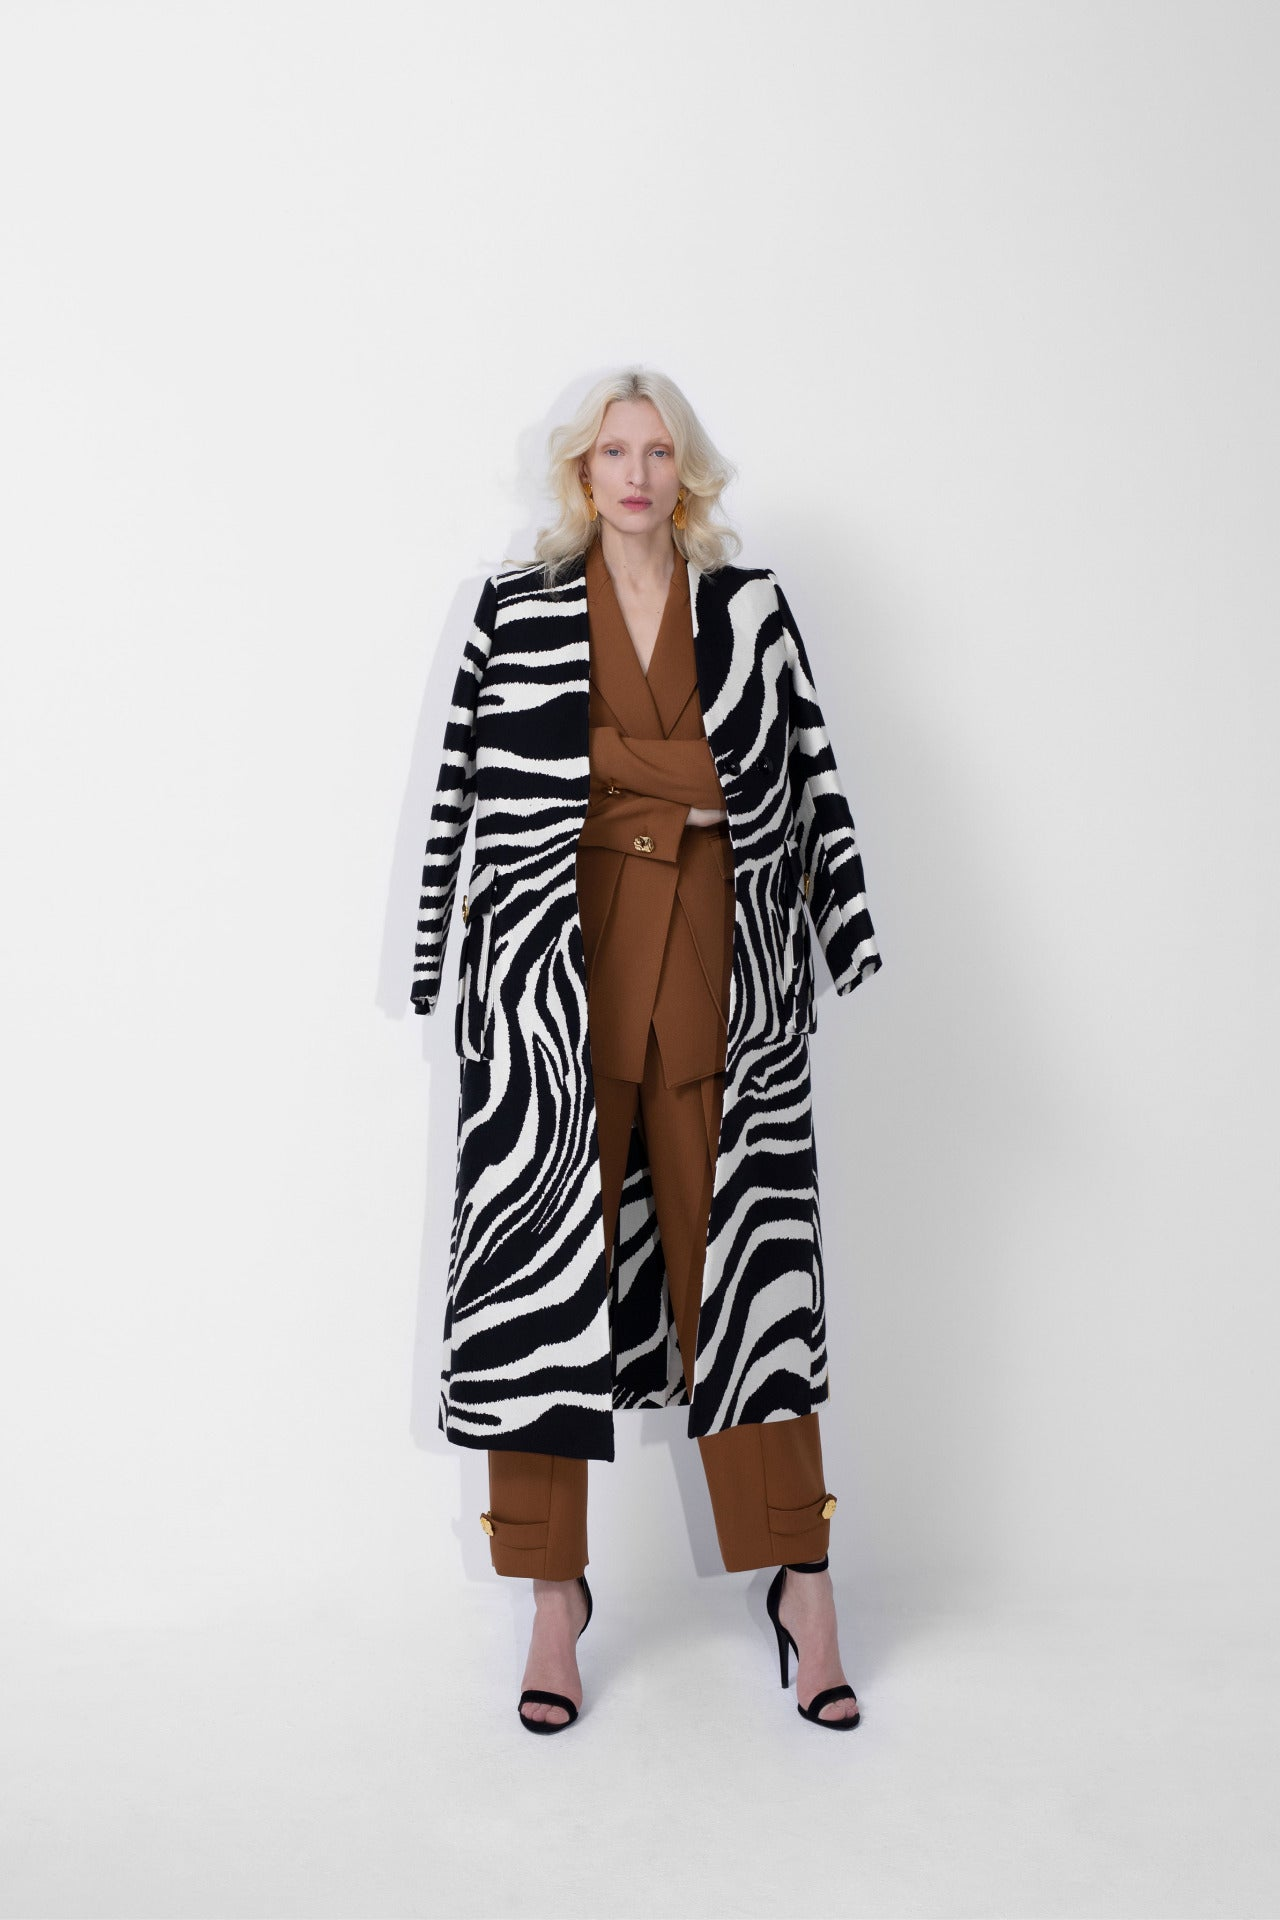 ESCADA Fall/Winter 2020 Heavy zebra coat and power suit